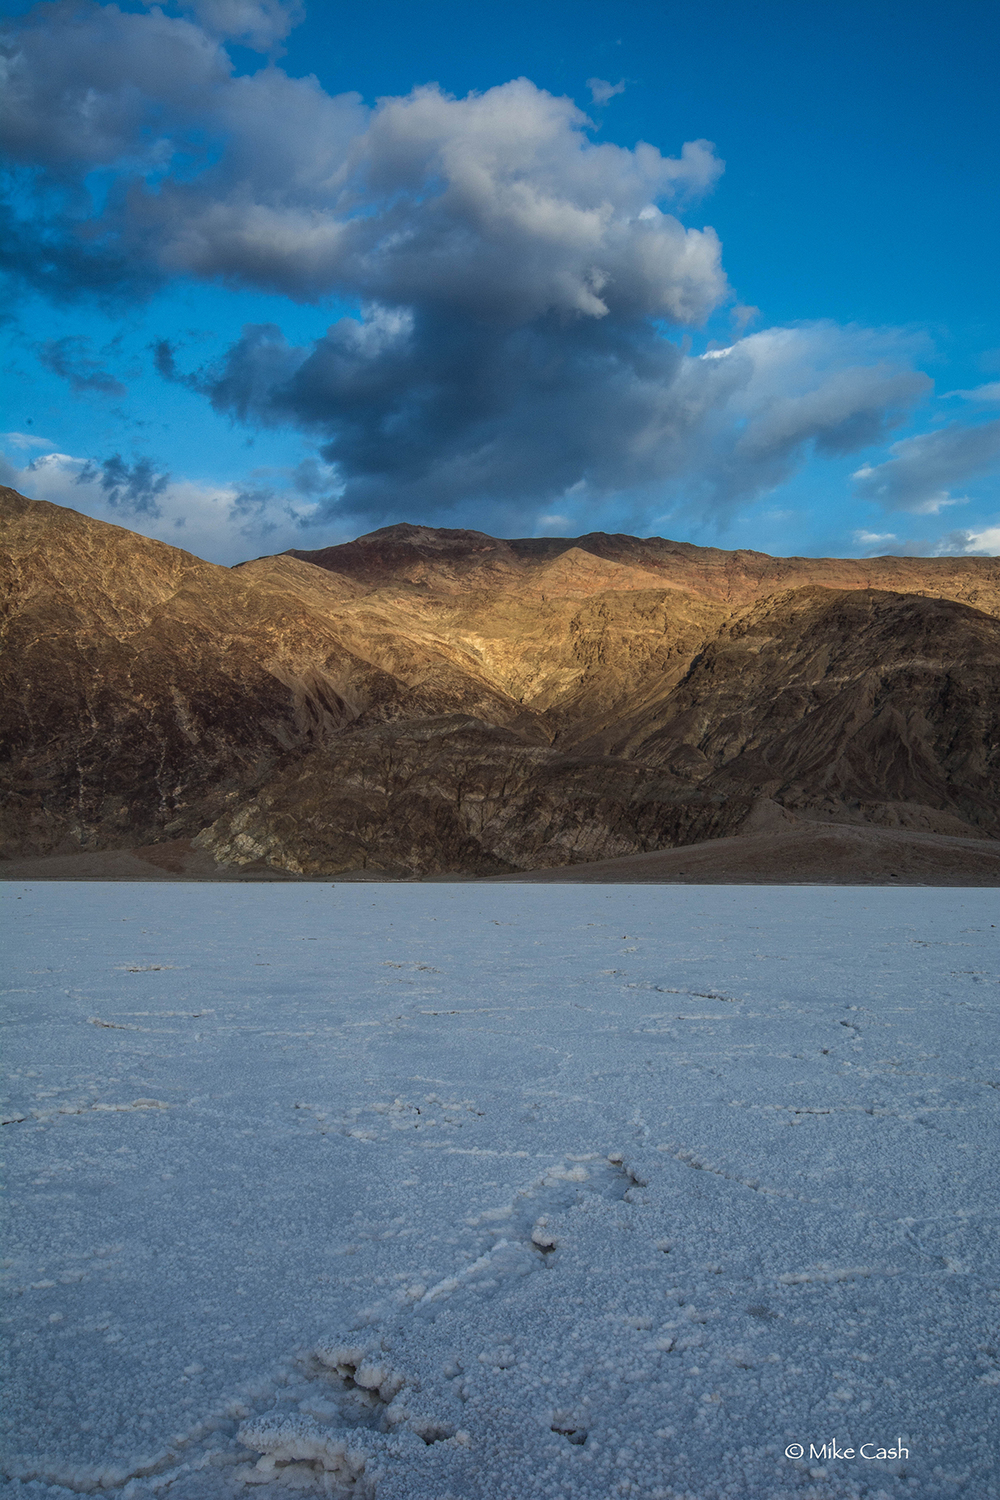 Evening at Badwater Basin